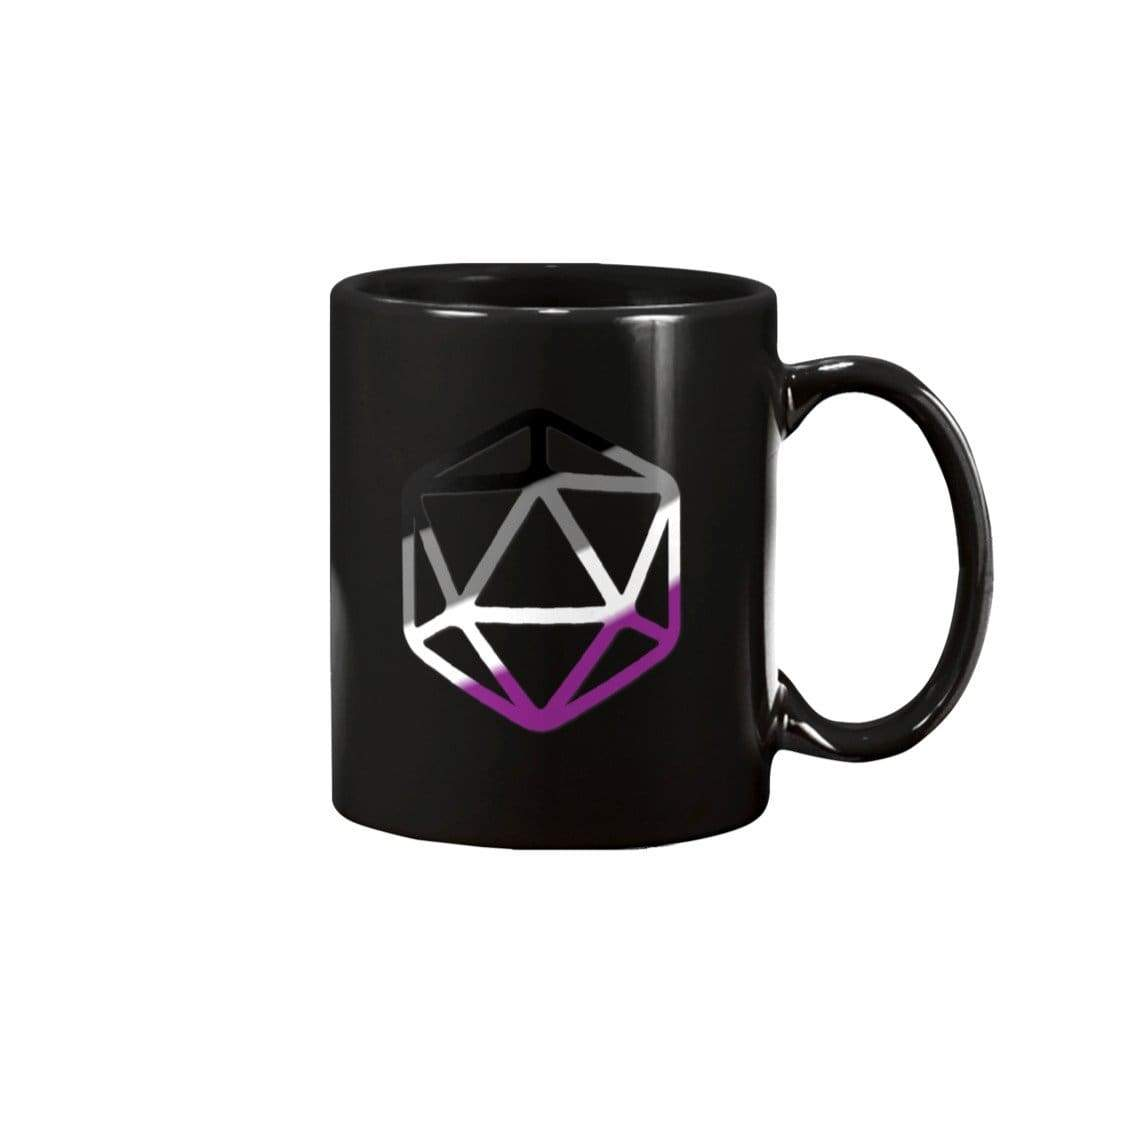 D20 Critical Pride Ace Pride 11oz Coffee Mug - Black / 11OZ - Mugs